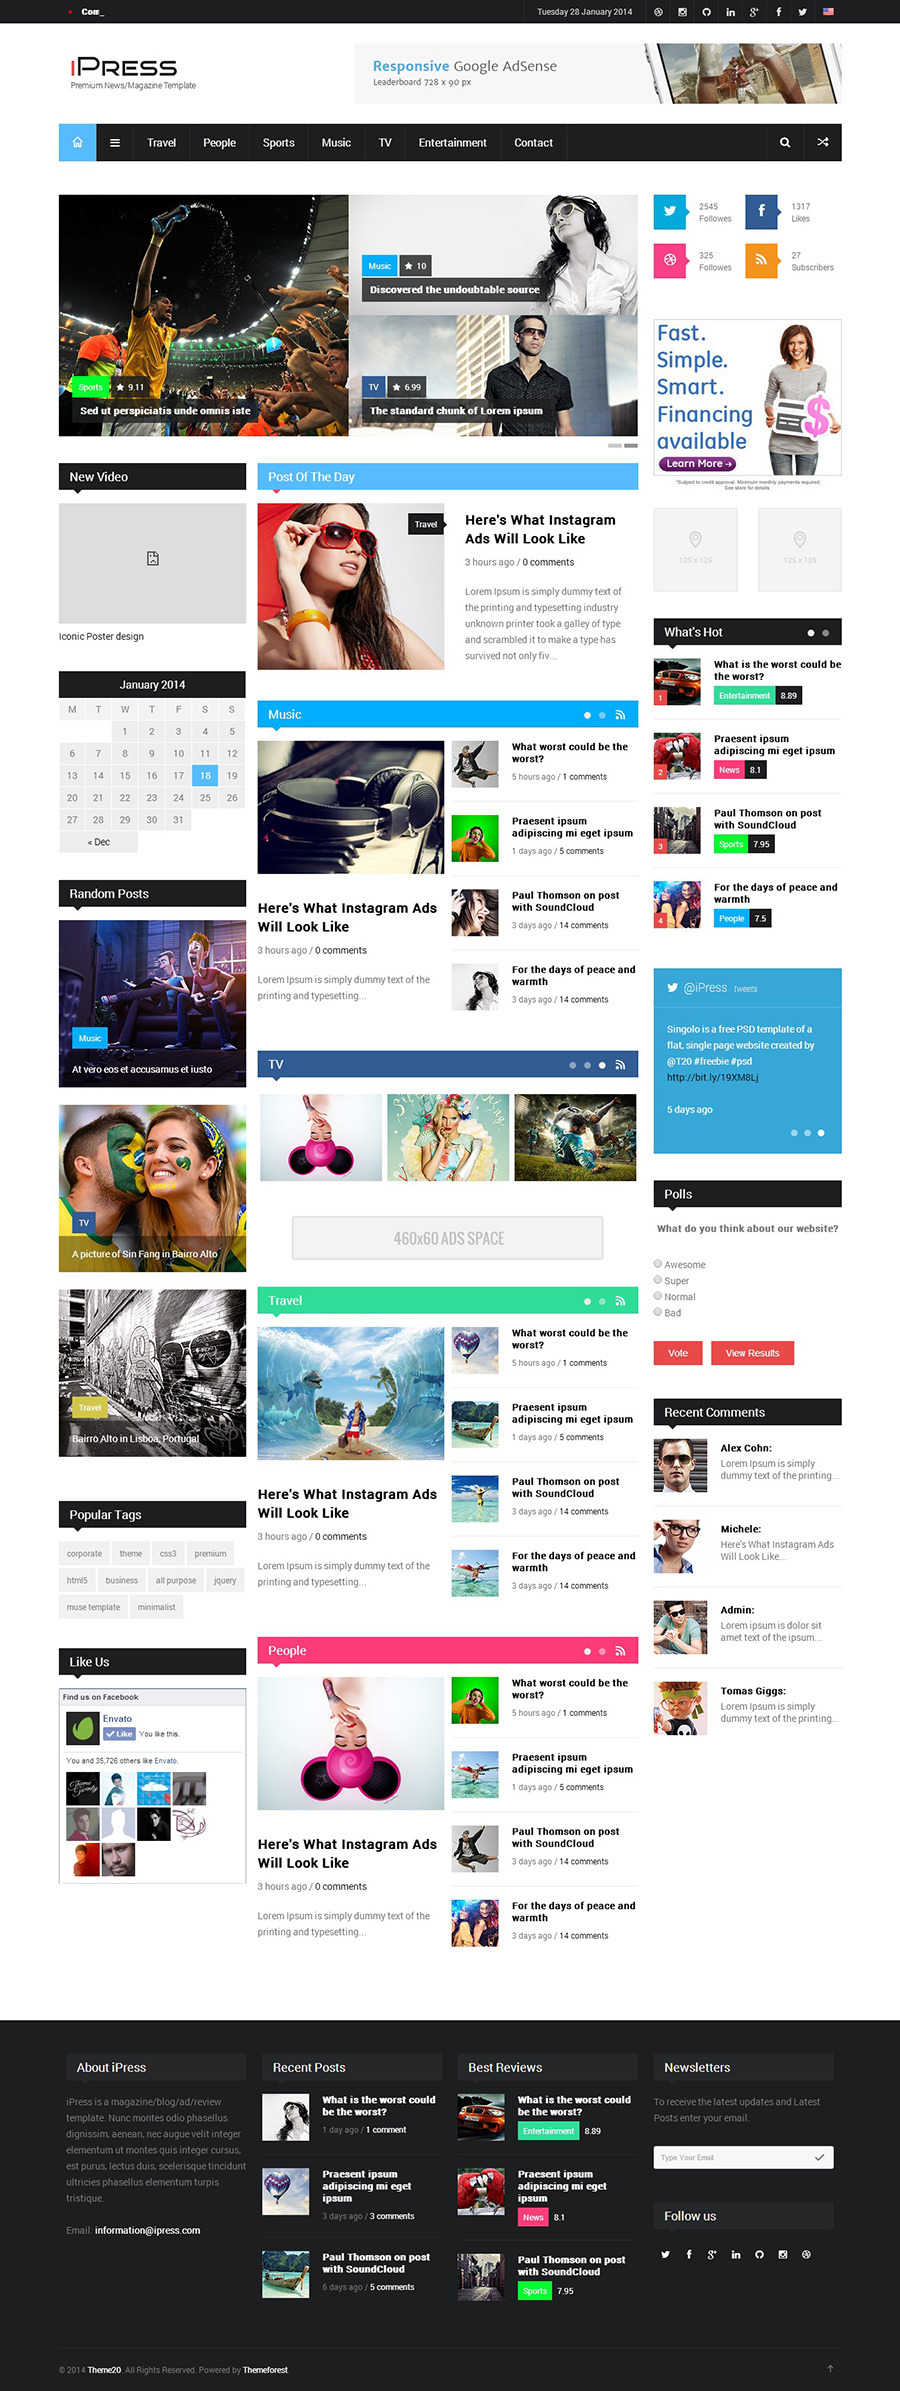 iPress - Responsive News/Magazine/Blog HTML5